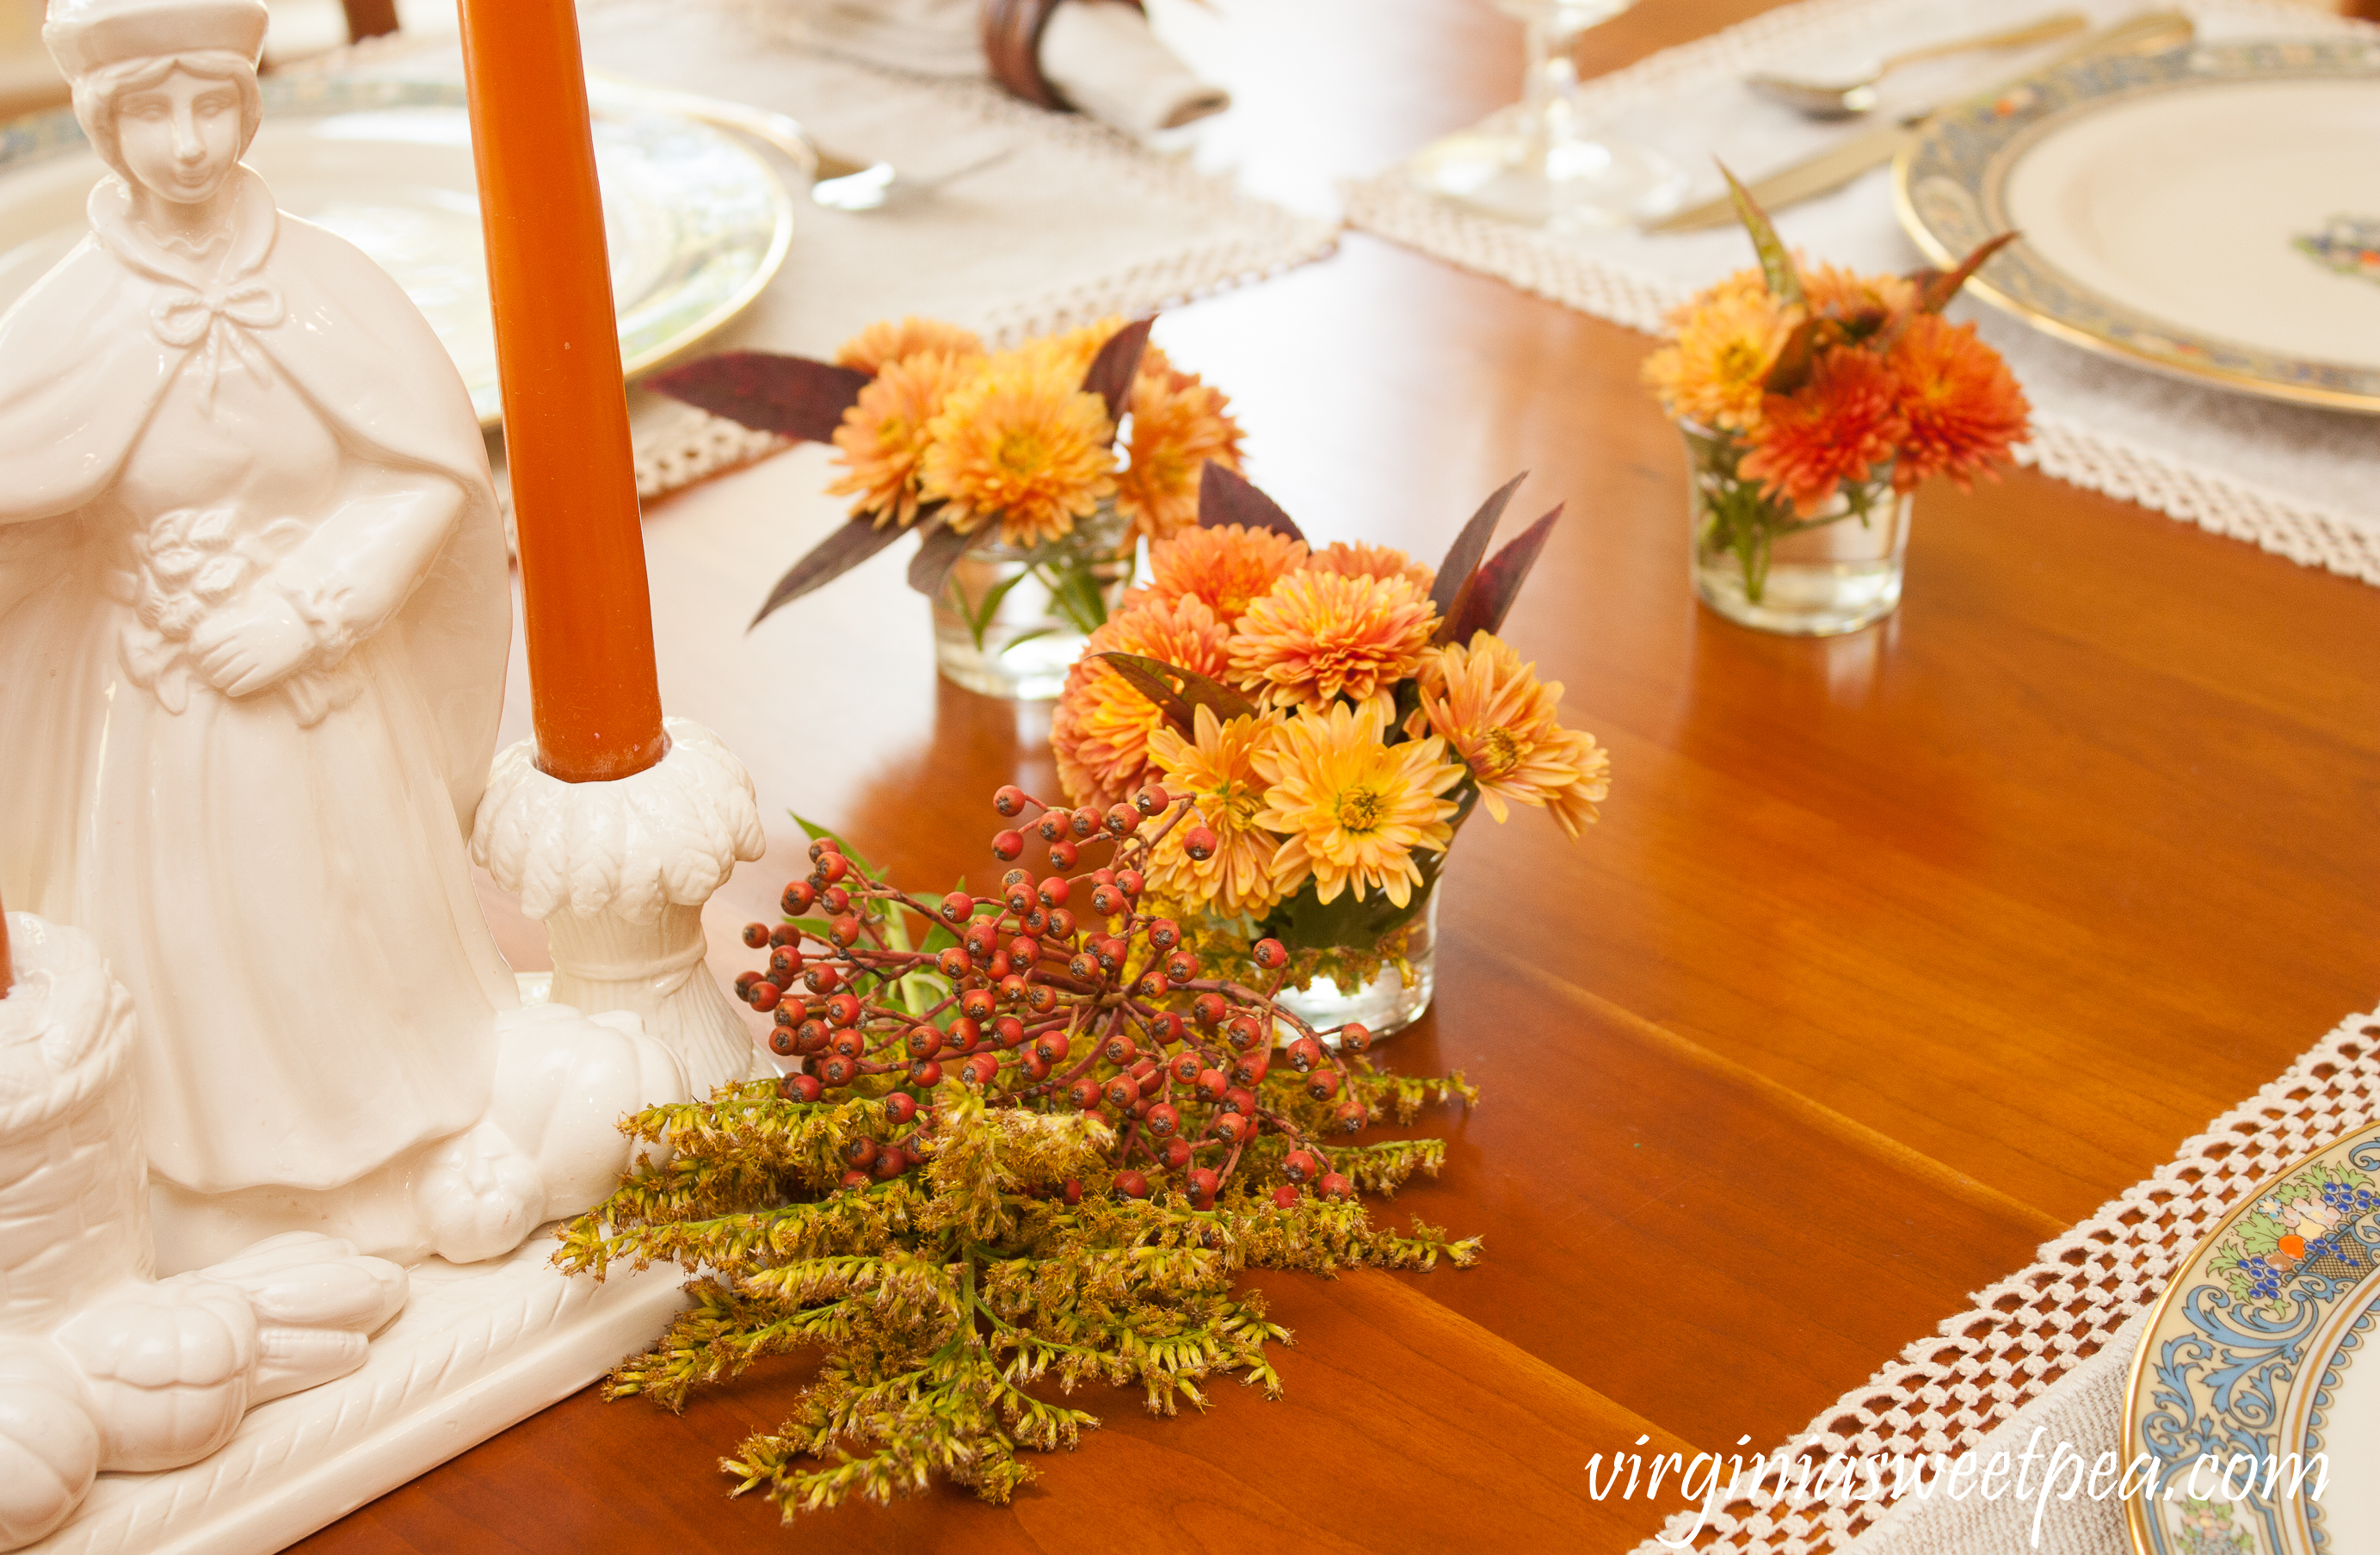 Create easy and inexpensive floral arrangements for your fall or Thanksgiving table with flowers and berries from your yard or neighborhood. #thanksgiving #fallflorals #flowerarrangement #thanksgivingtable